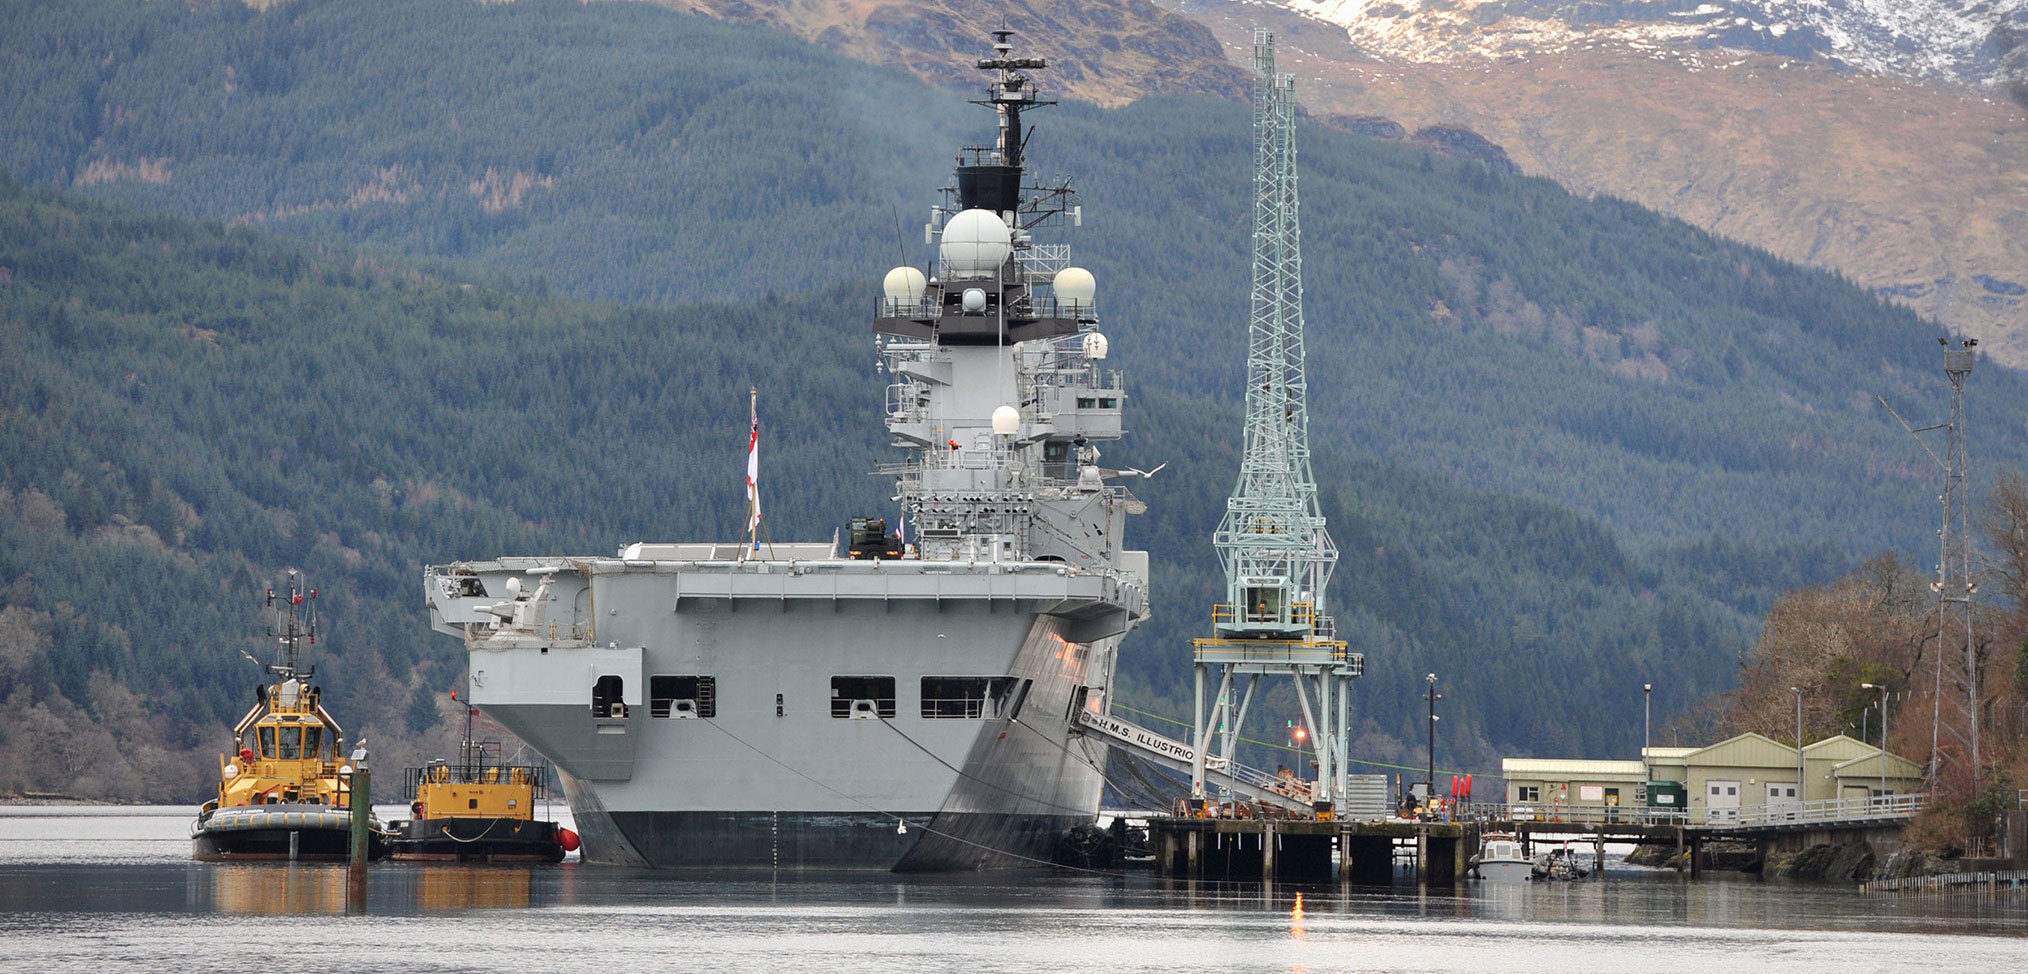 Upgrades to the Scottish facility used to ammunition the Royal Navy's aircraft carriers